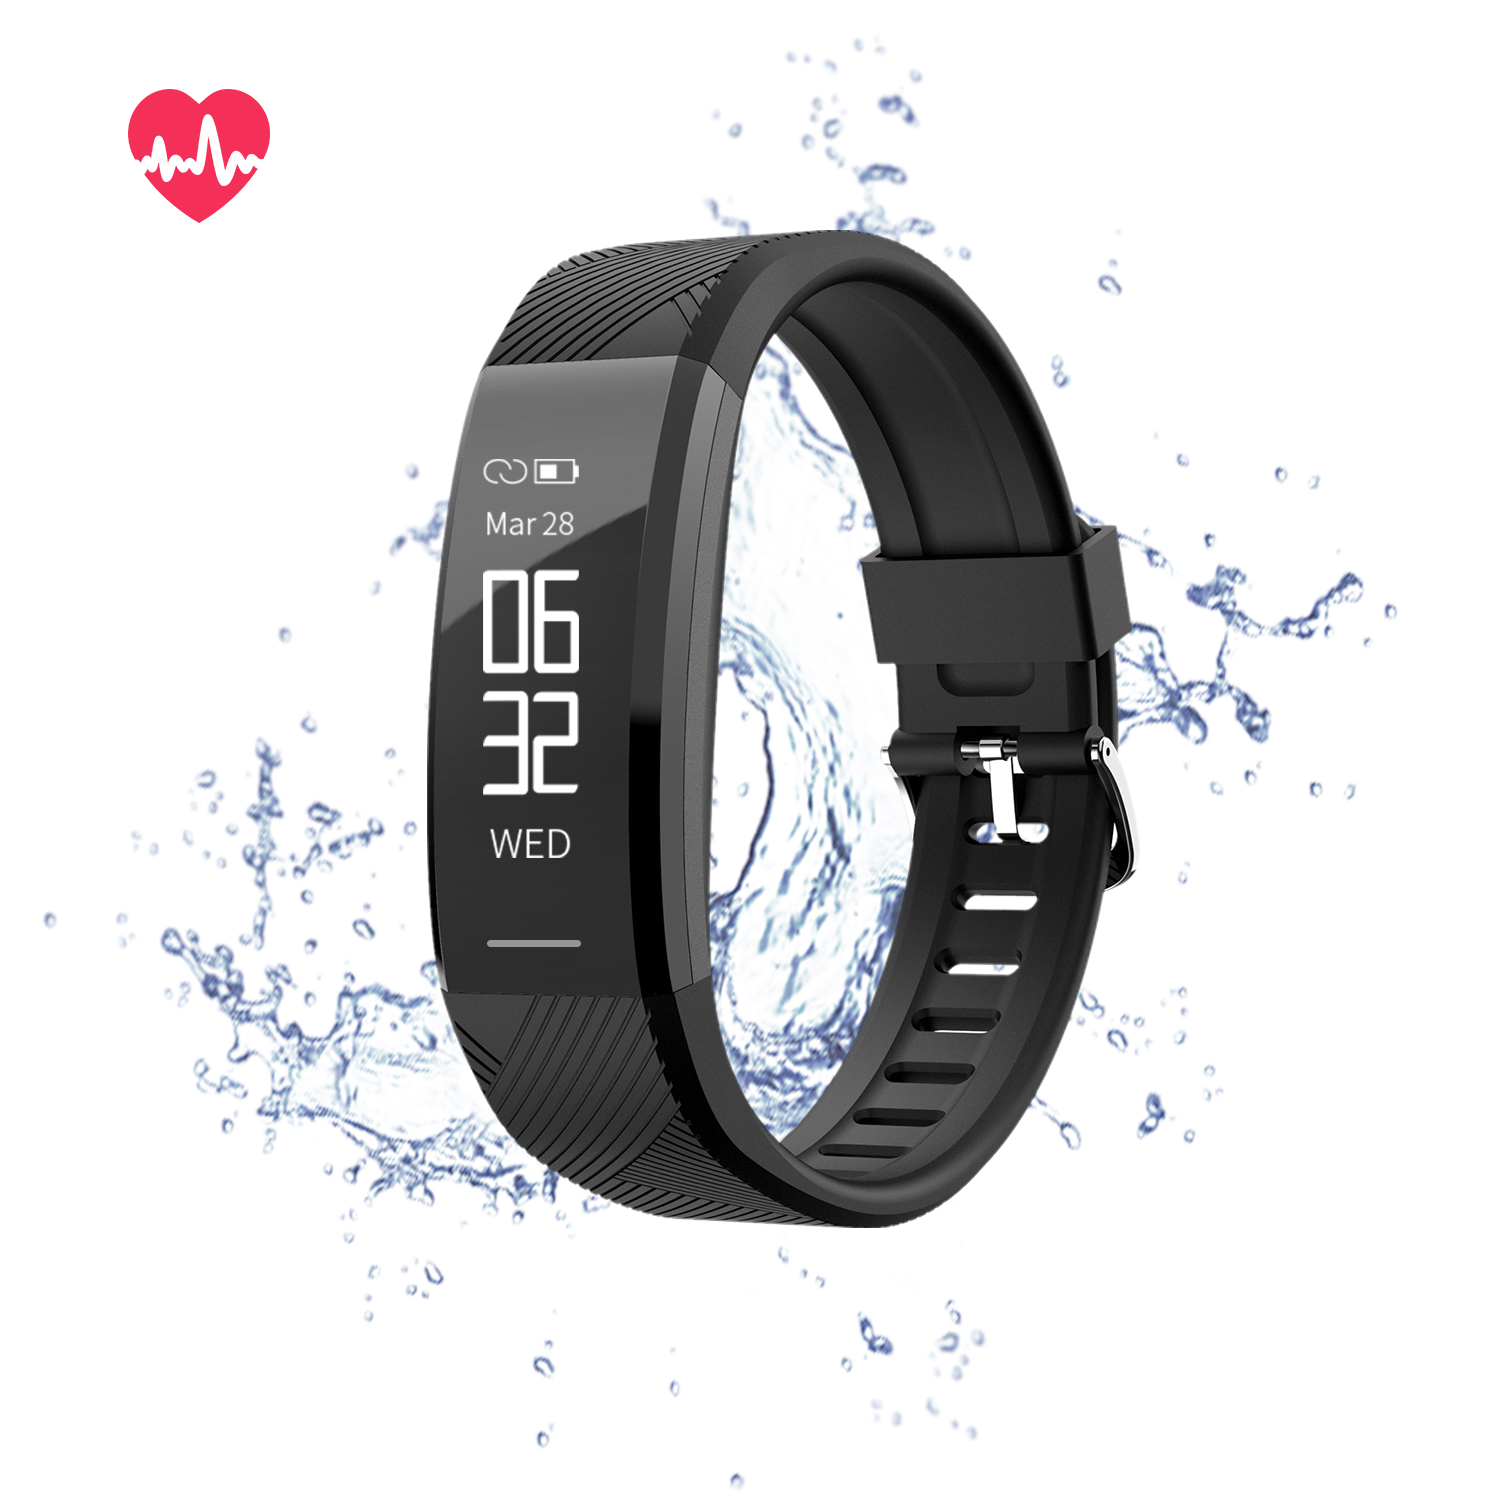 Fitness Tracker, Smart Watch Heart Rate Monitor Activity Tracker with Step Counter, Sleep Monitor, IP67 Waterproof Bluetooth Pedometer for Android and iOS Smartphone